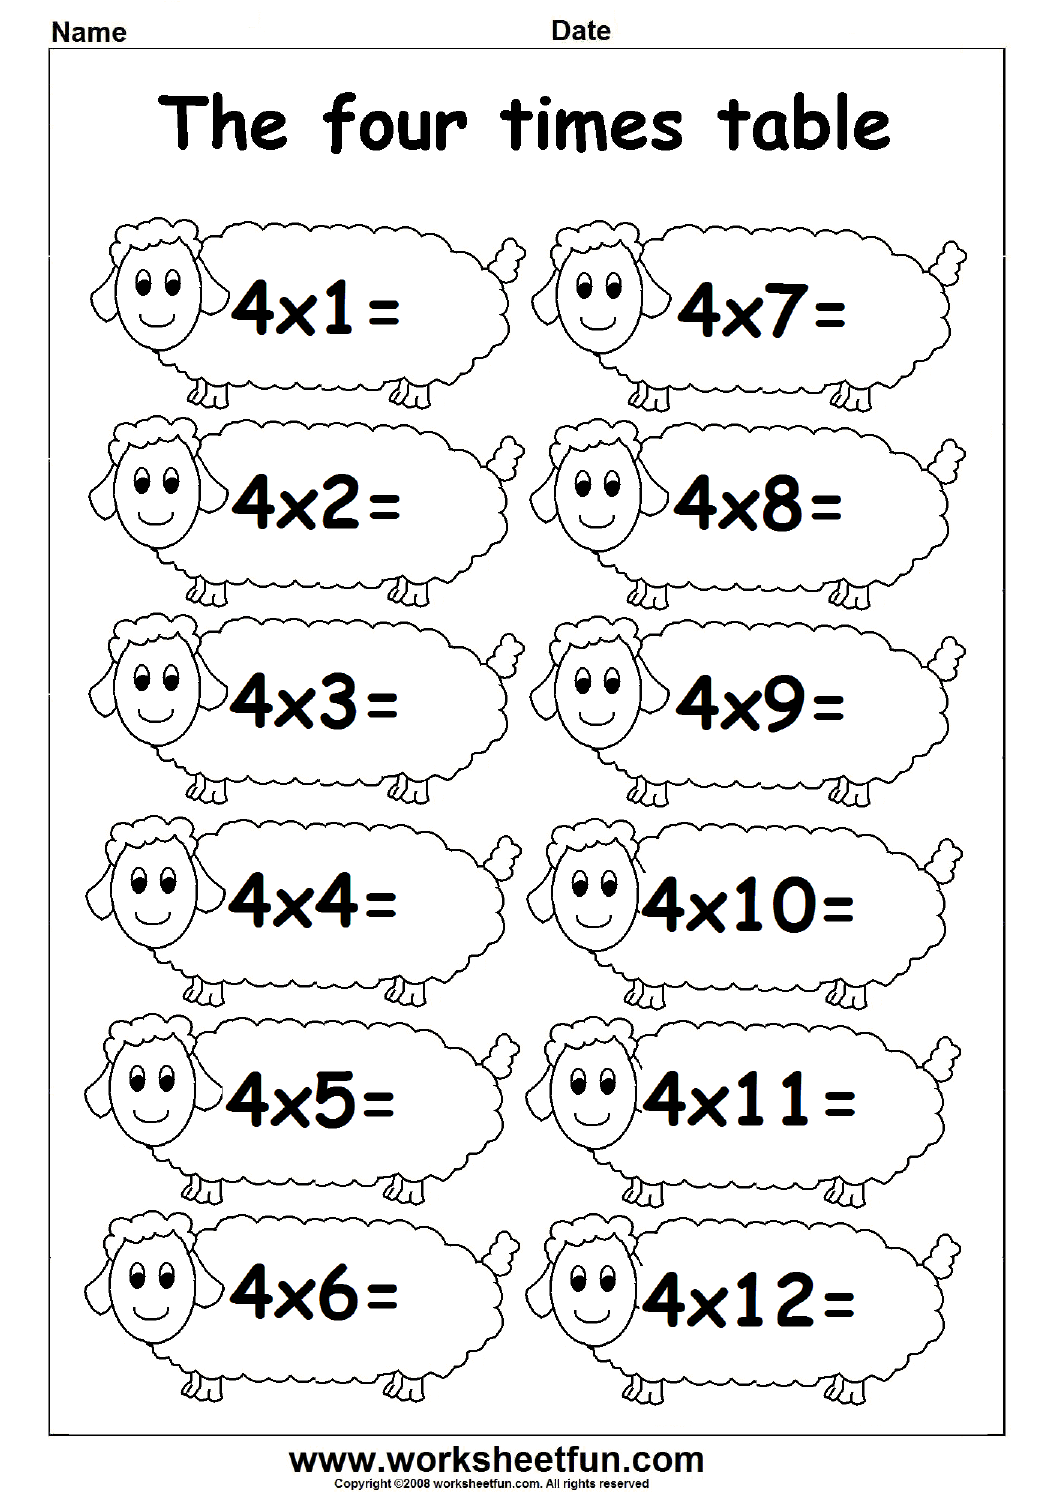 Worksheets Time Table Worksheets fun times table worksheets 2 3 4 printable 2